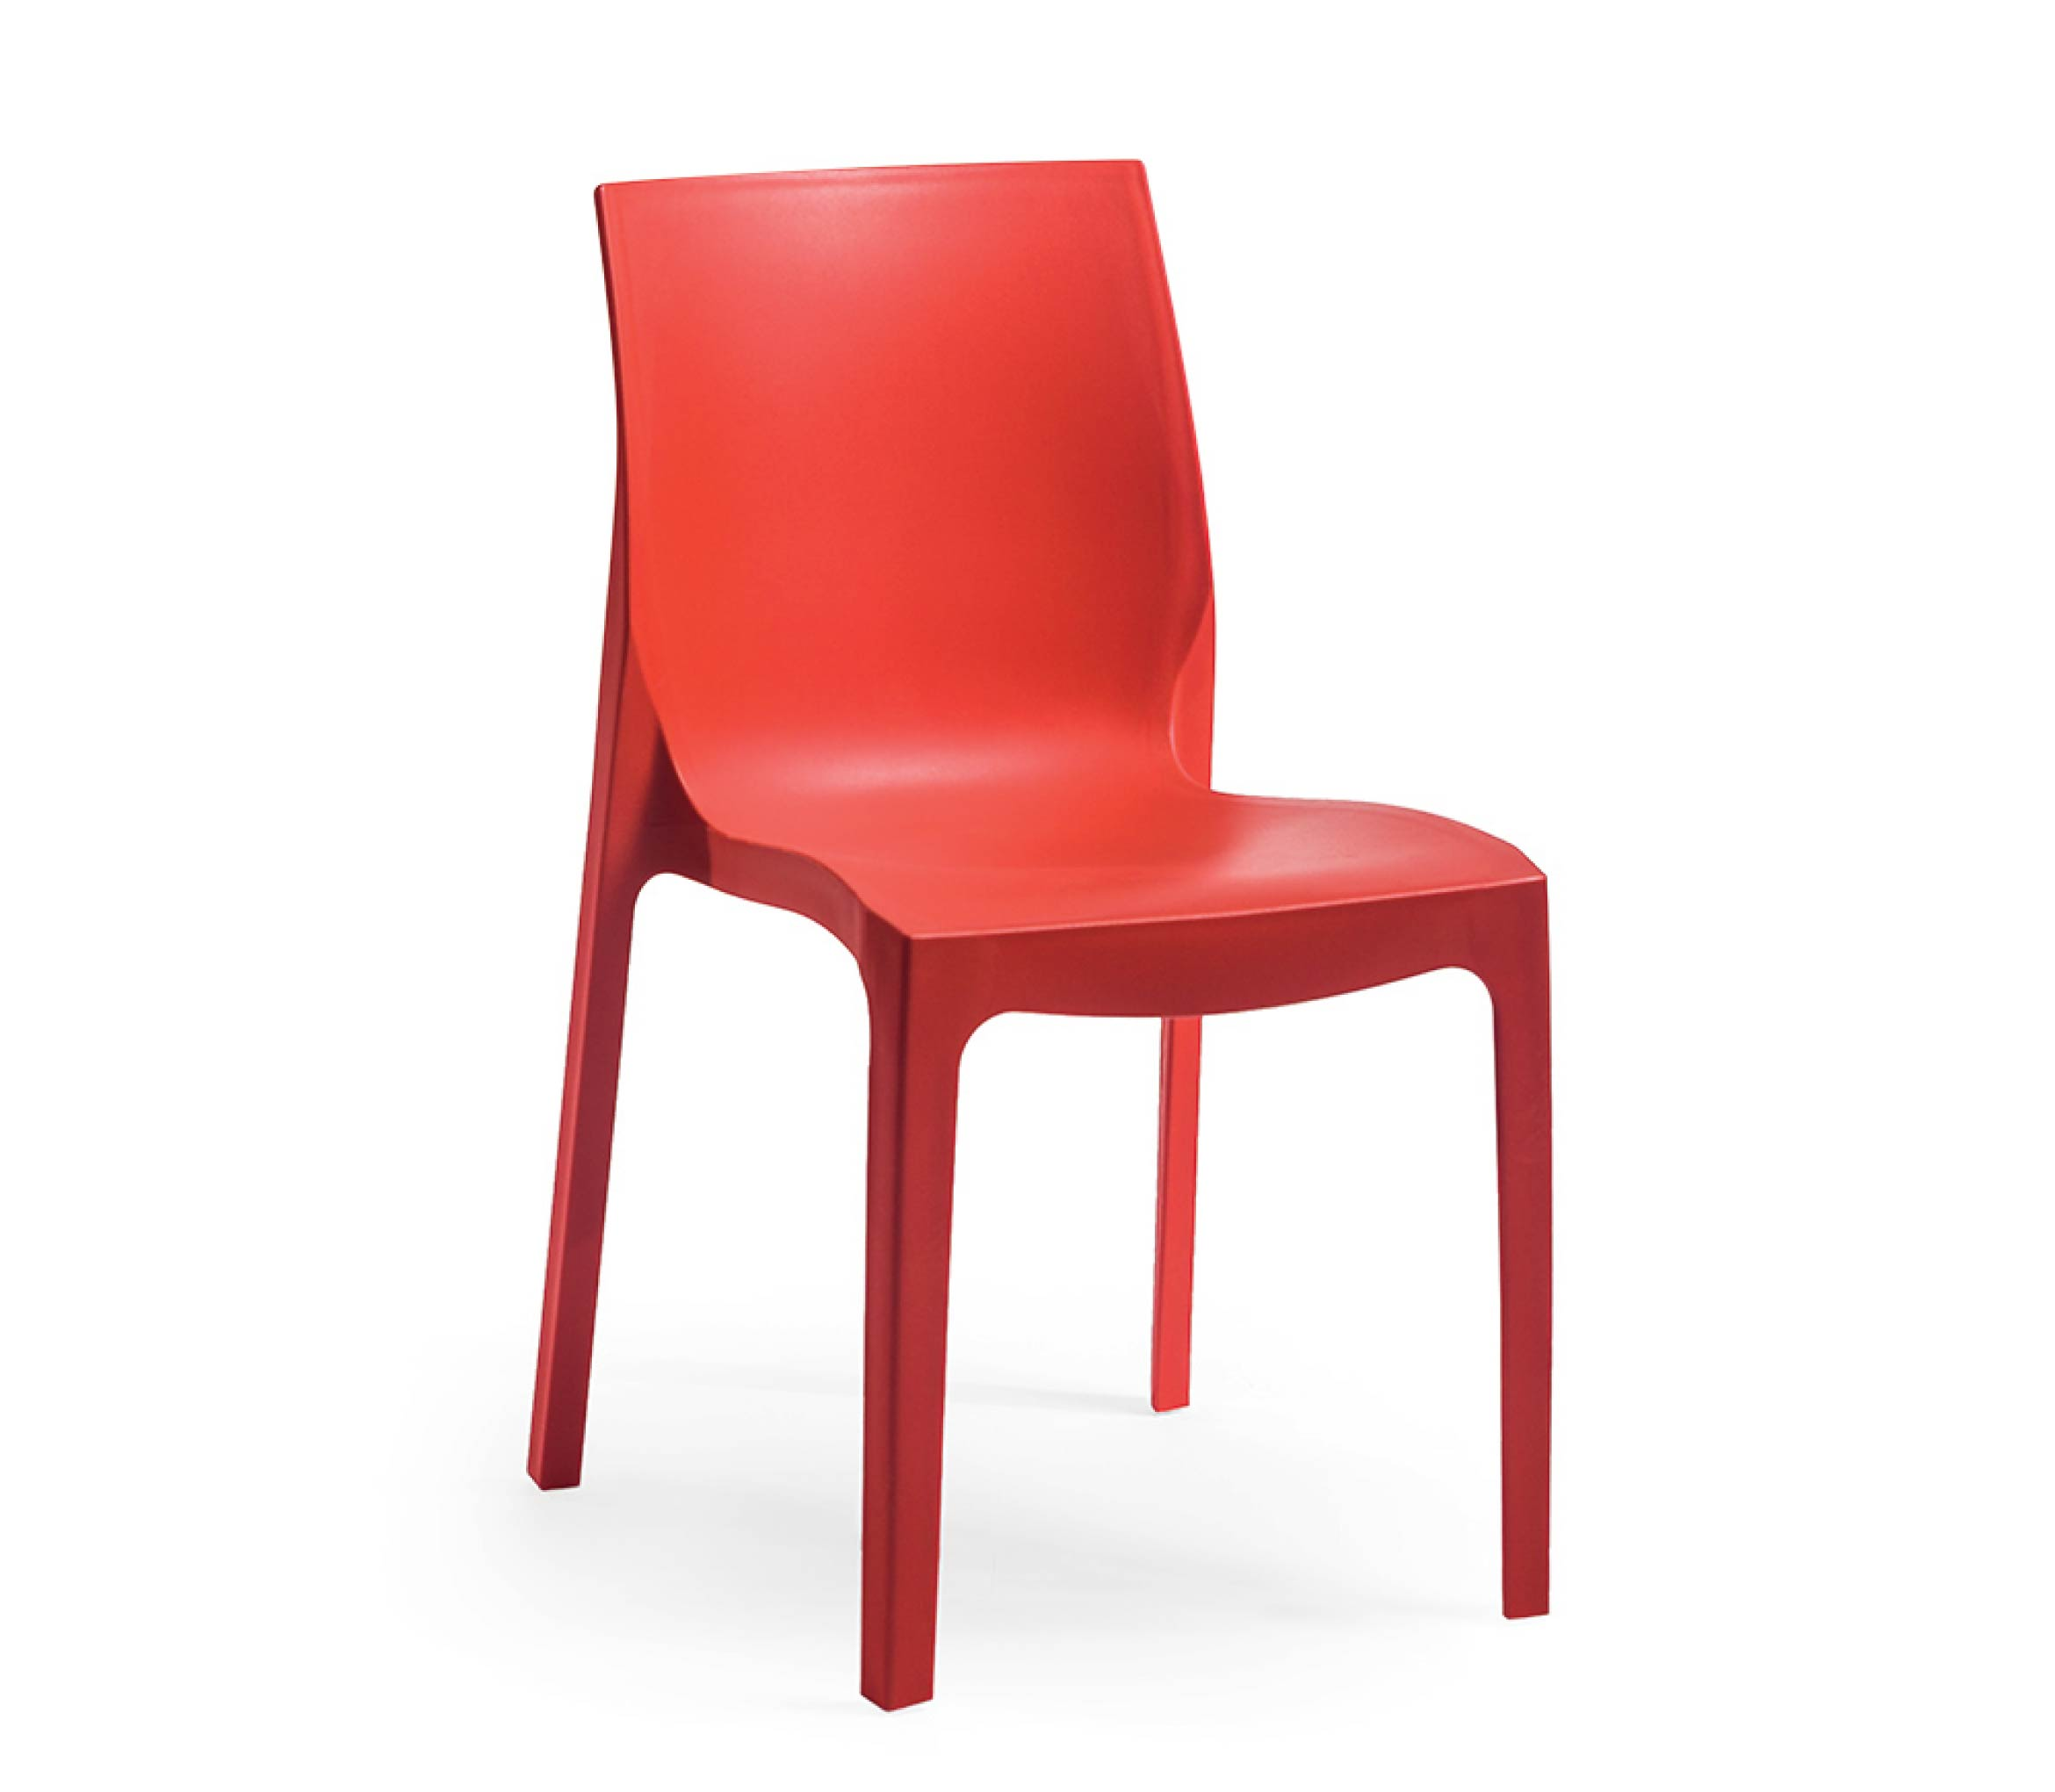 3_TENSAI_FURNITURE_EMMA_RED_COLOR_PLASTIC_CHAIR_white_background_405_001